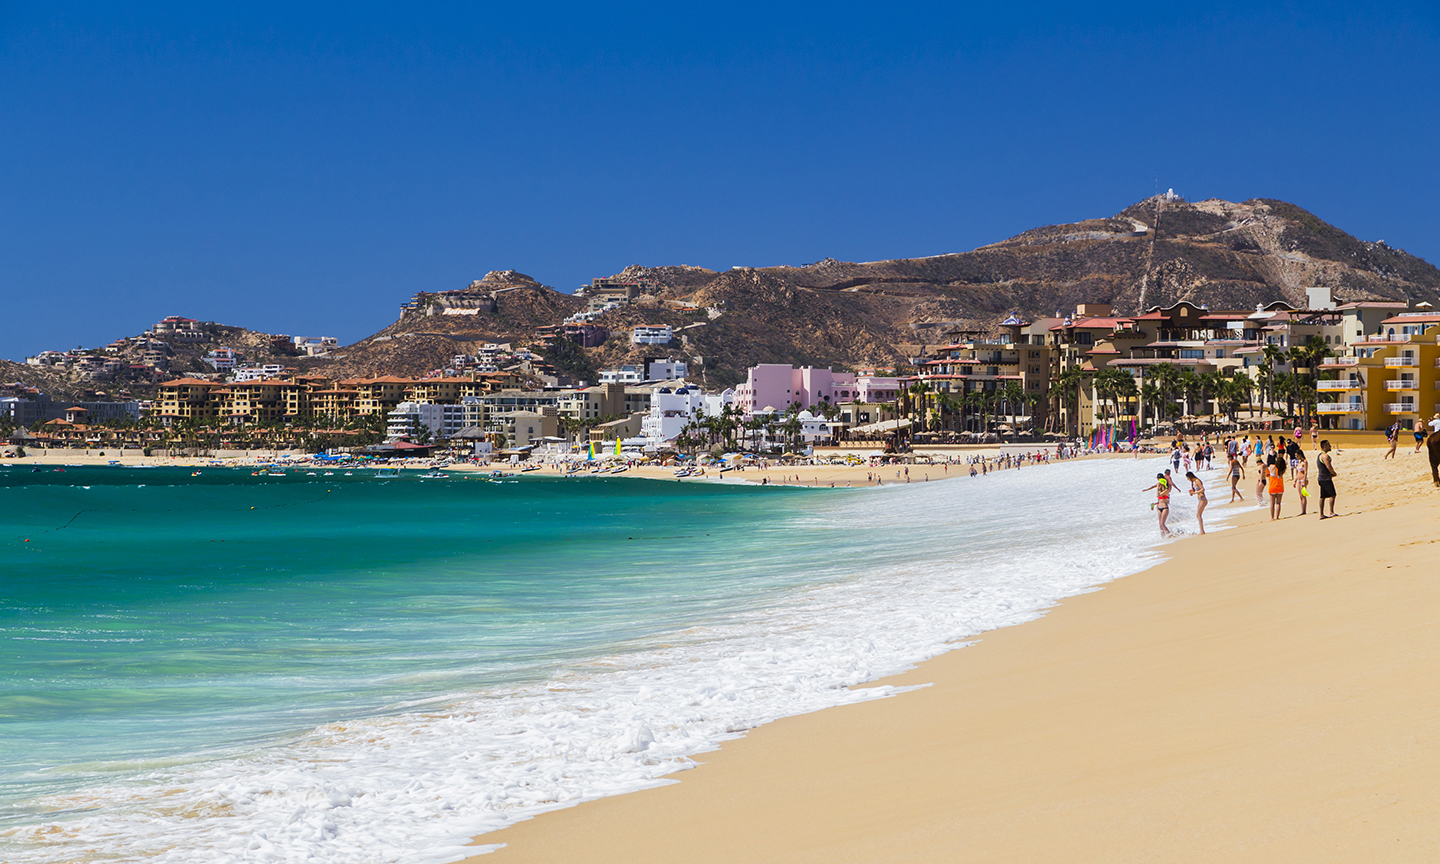 A view along the beach toward Cabo San Lucas, Mexico, with green-blue water to the left and blue sky above.